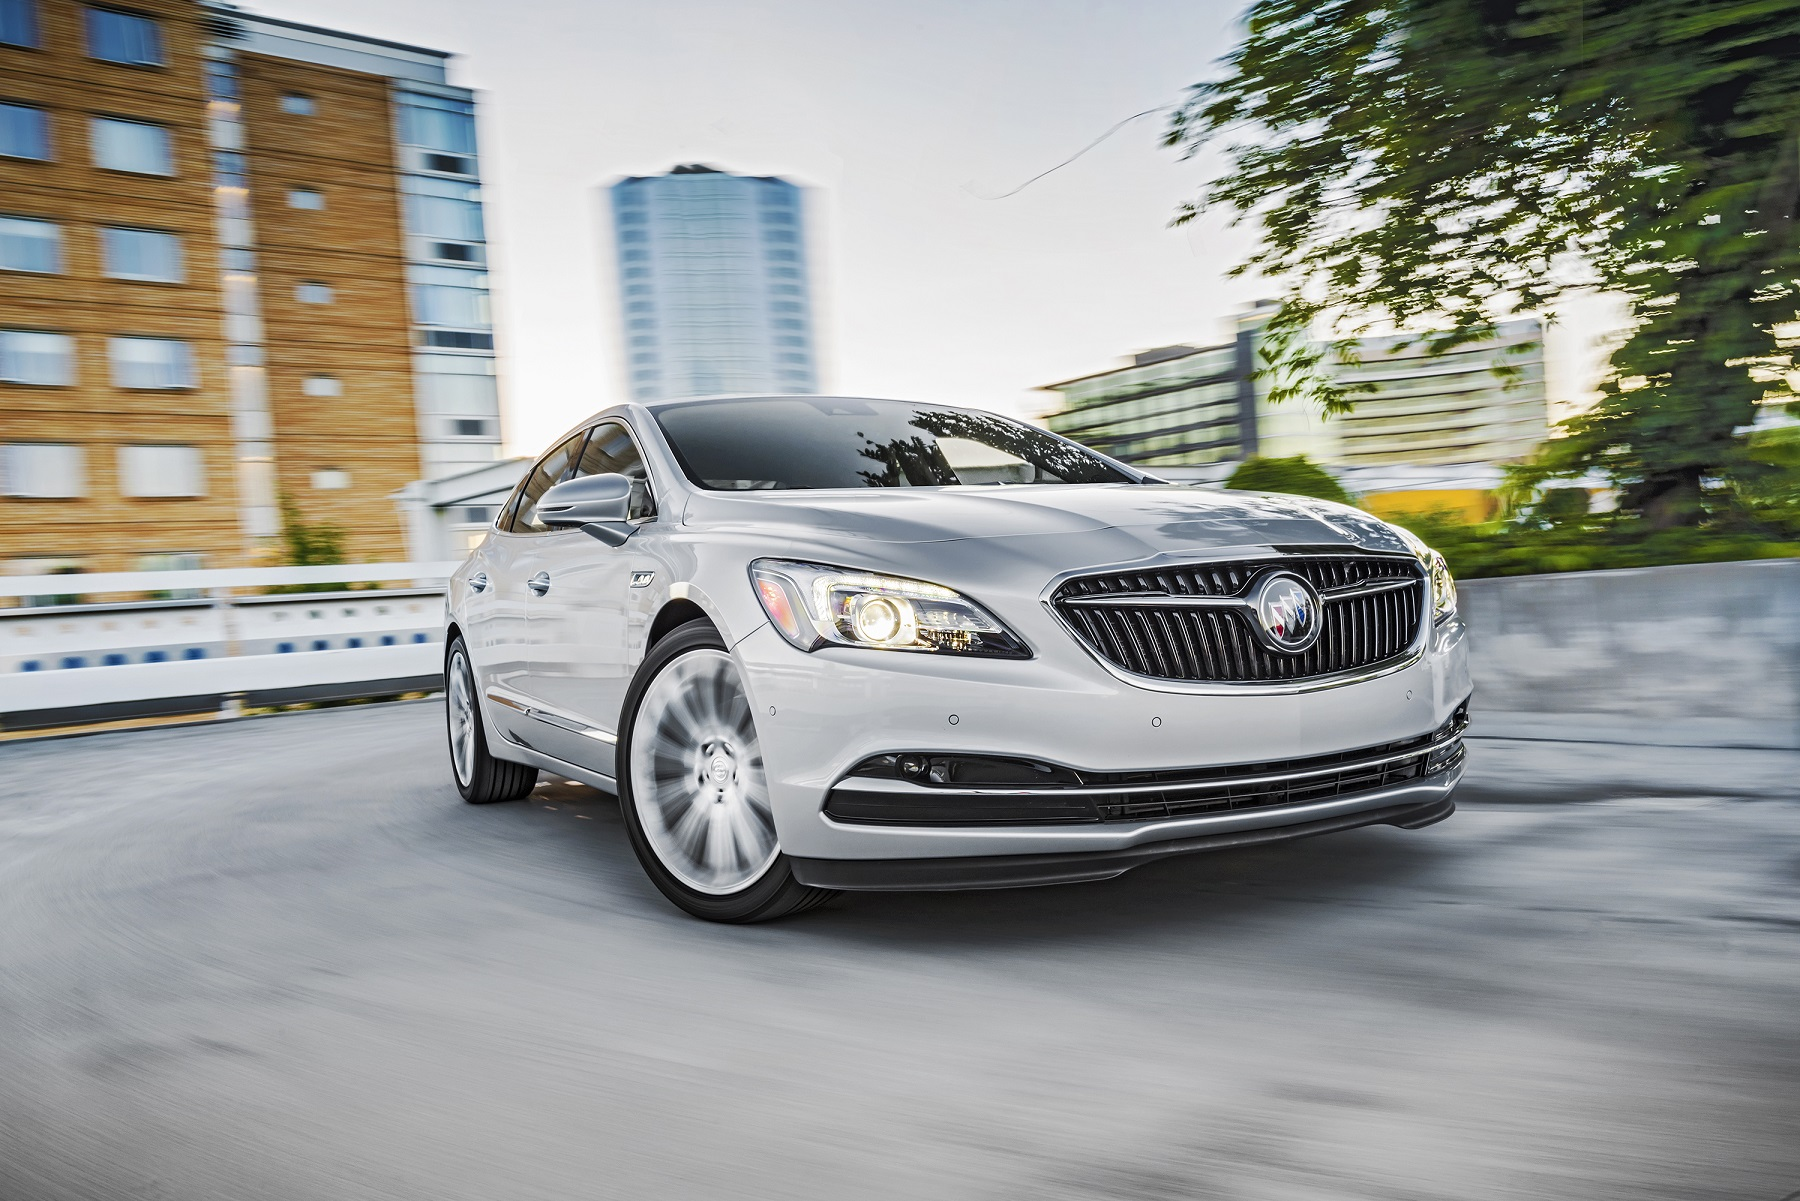 Manufacturer photo: The all-new 2017 LaCrosse introduces the new face of Buick